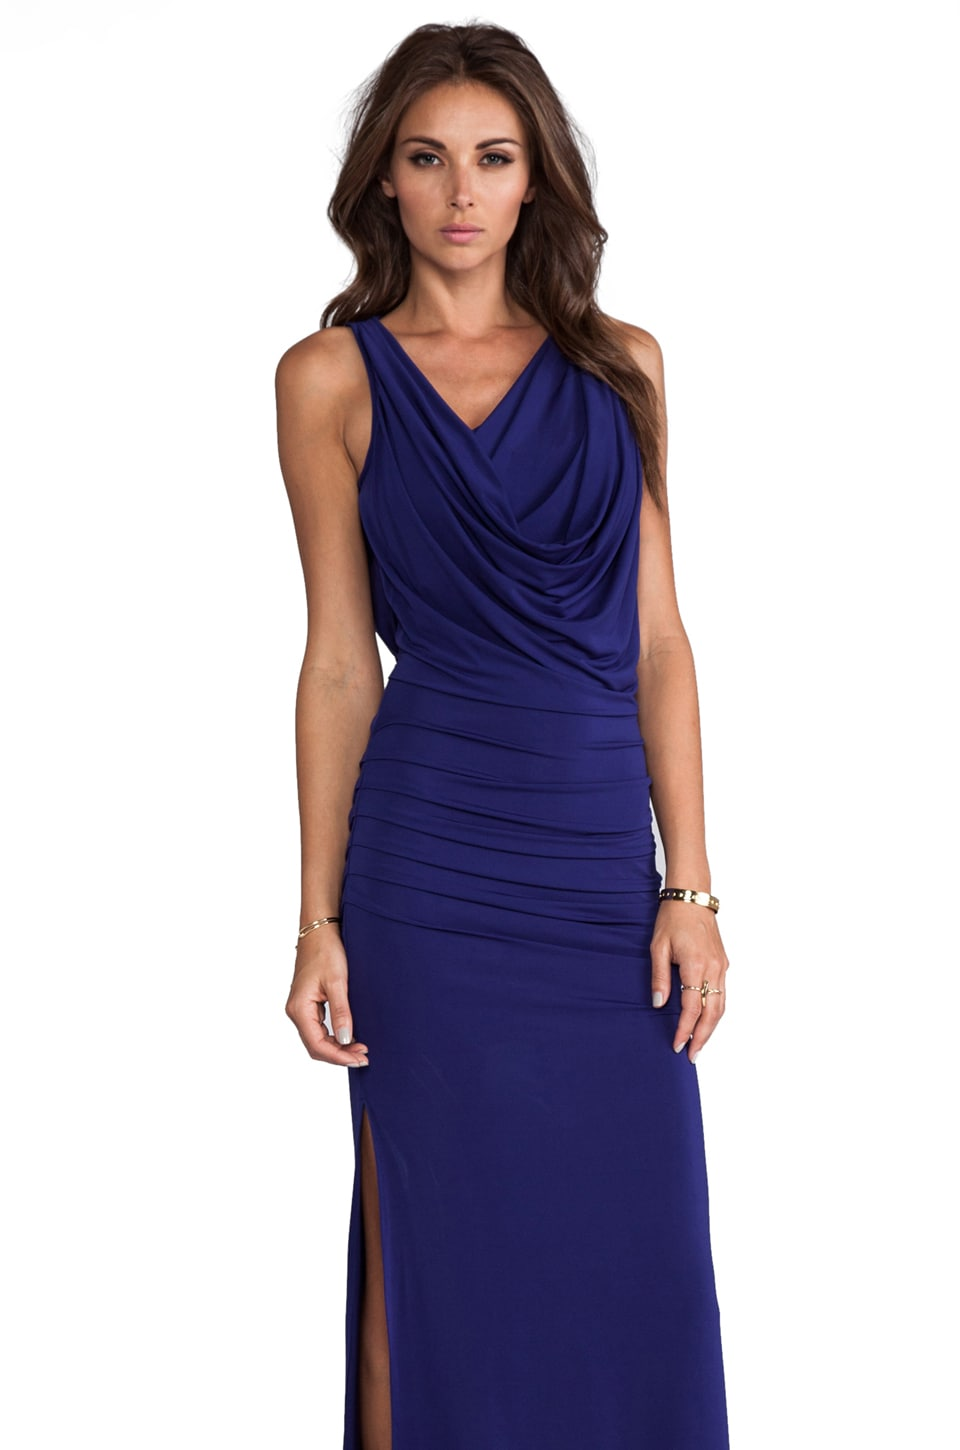 BCBGMAXAZRIA Nicole Dress in Orient Blue